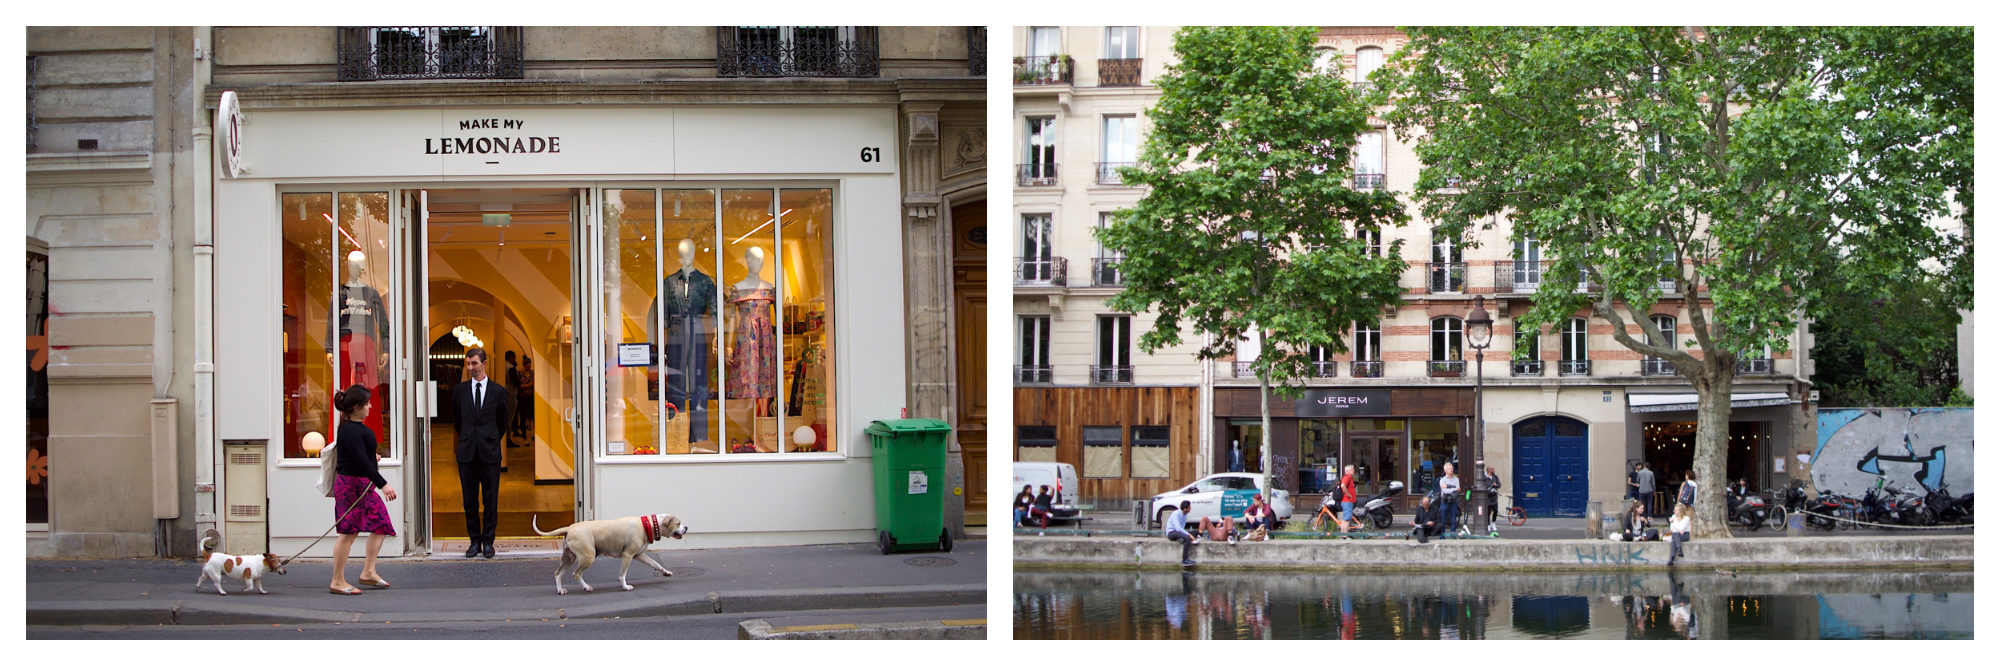 Outside Make My Lemonde clothing store on  the Canal Saint Martin (left). A view of the canal in Paris (right).